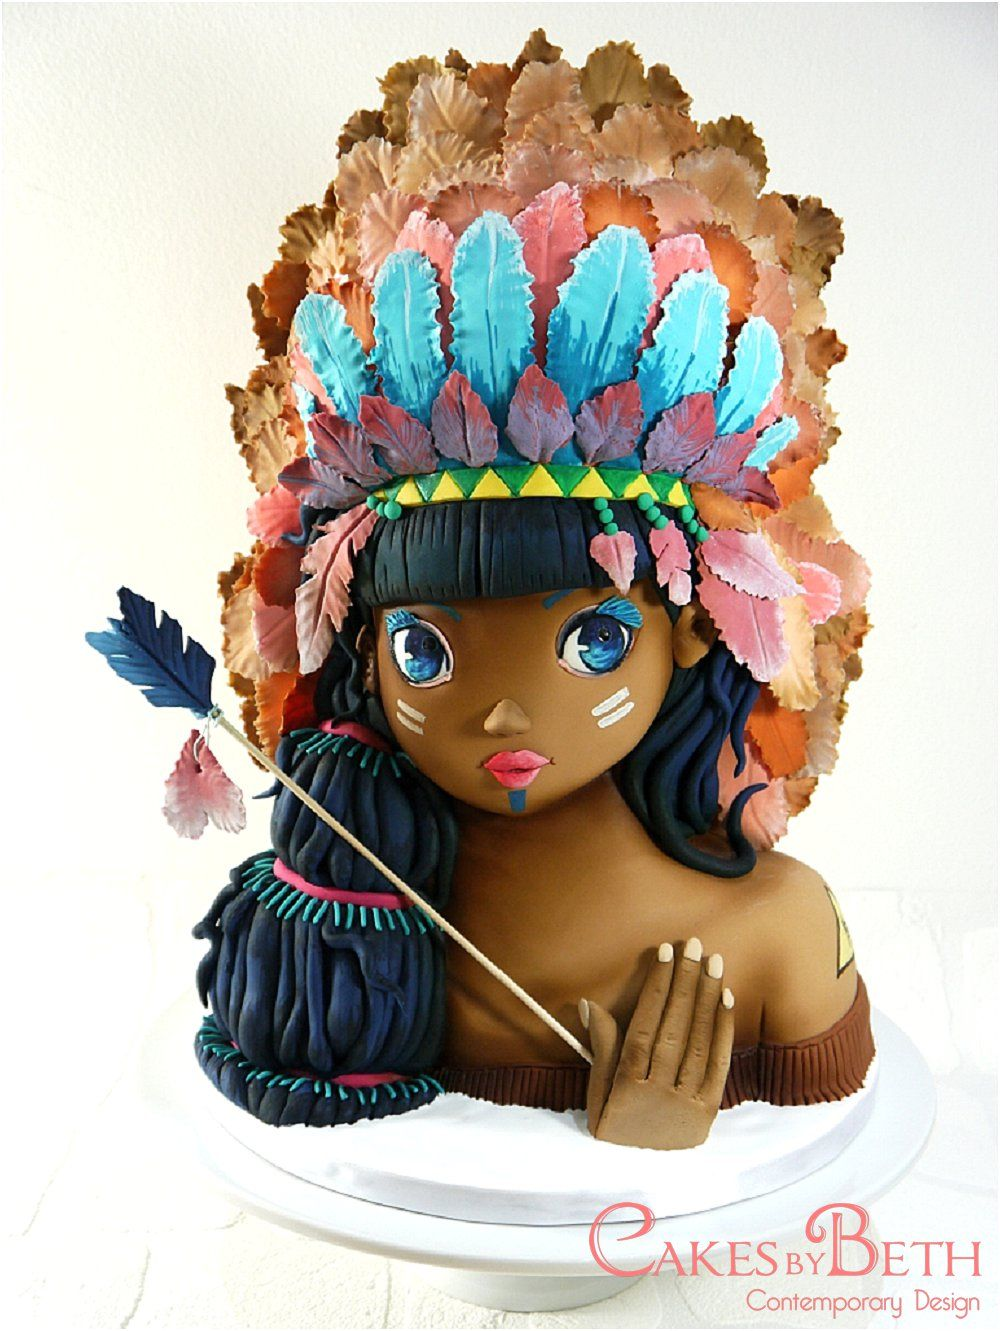 Cakes by beth threadcakes tiger lily native american girl